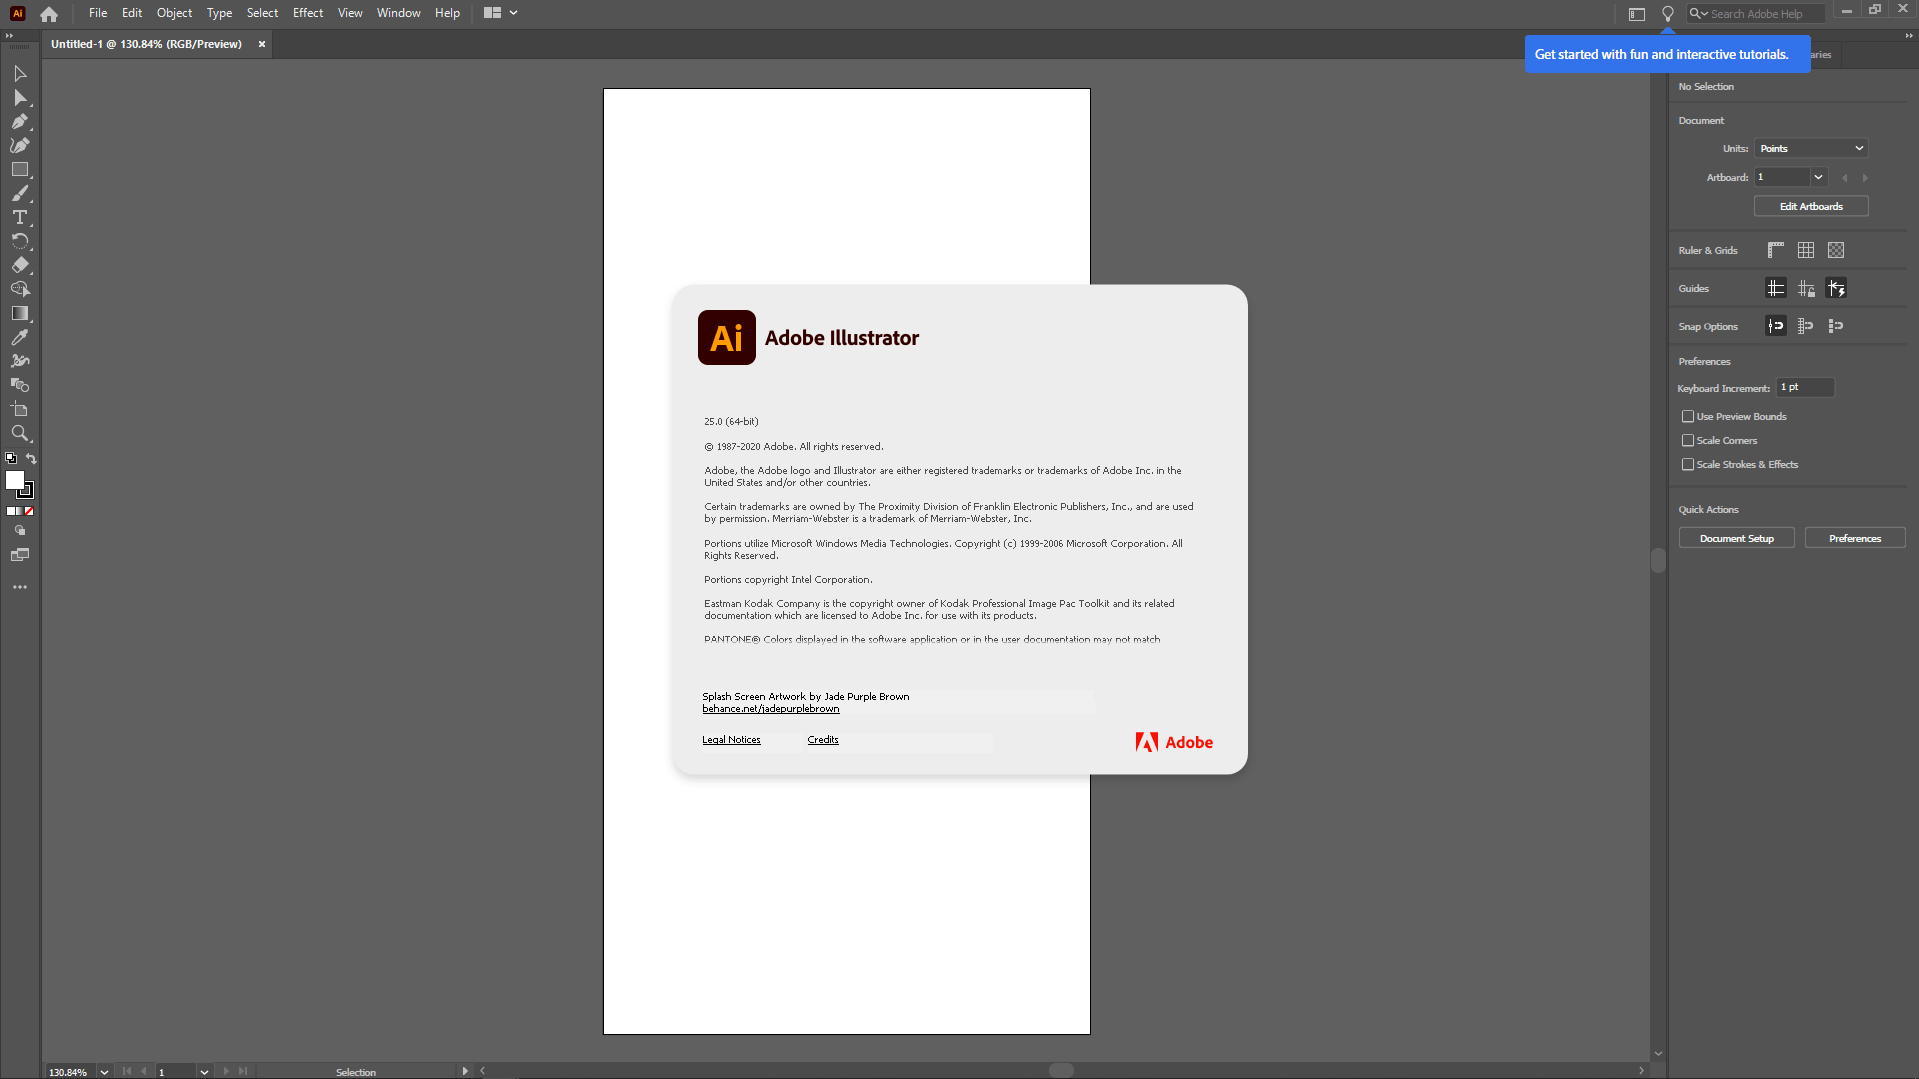 Download Gratis Adobe Illustrator 2021 Full Version Terbaru